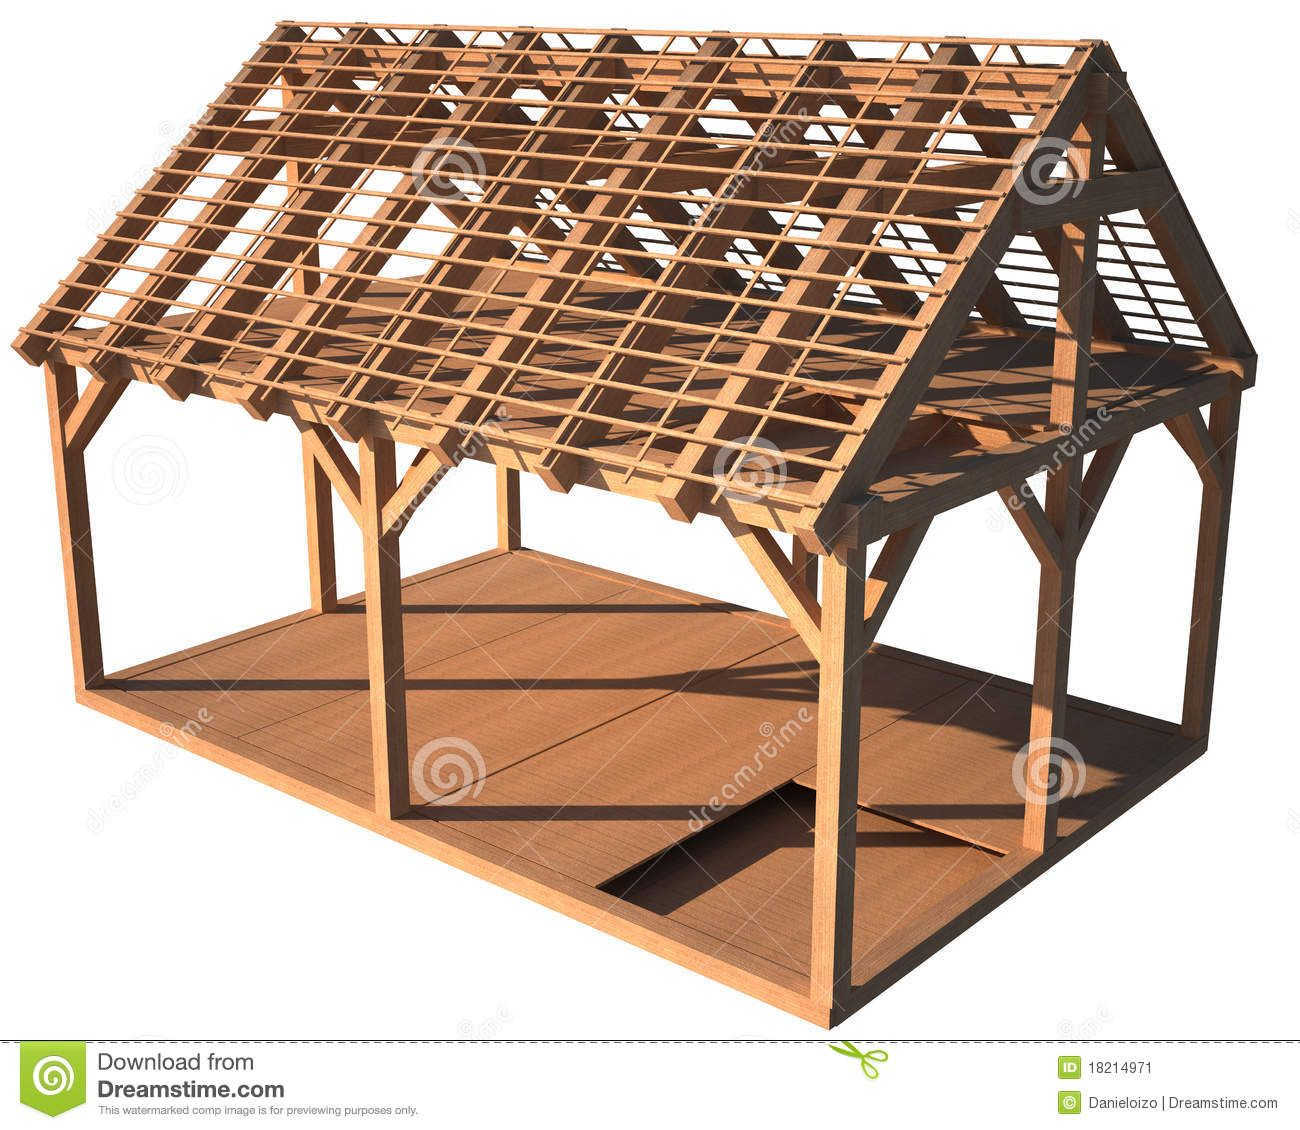 house-wood-structure-18214971.jpg (1300×1130)   Wood Fortress ref ...